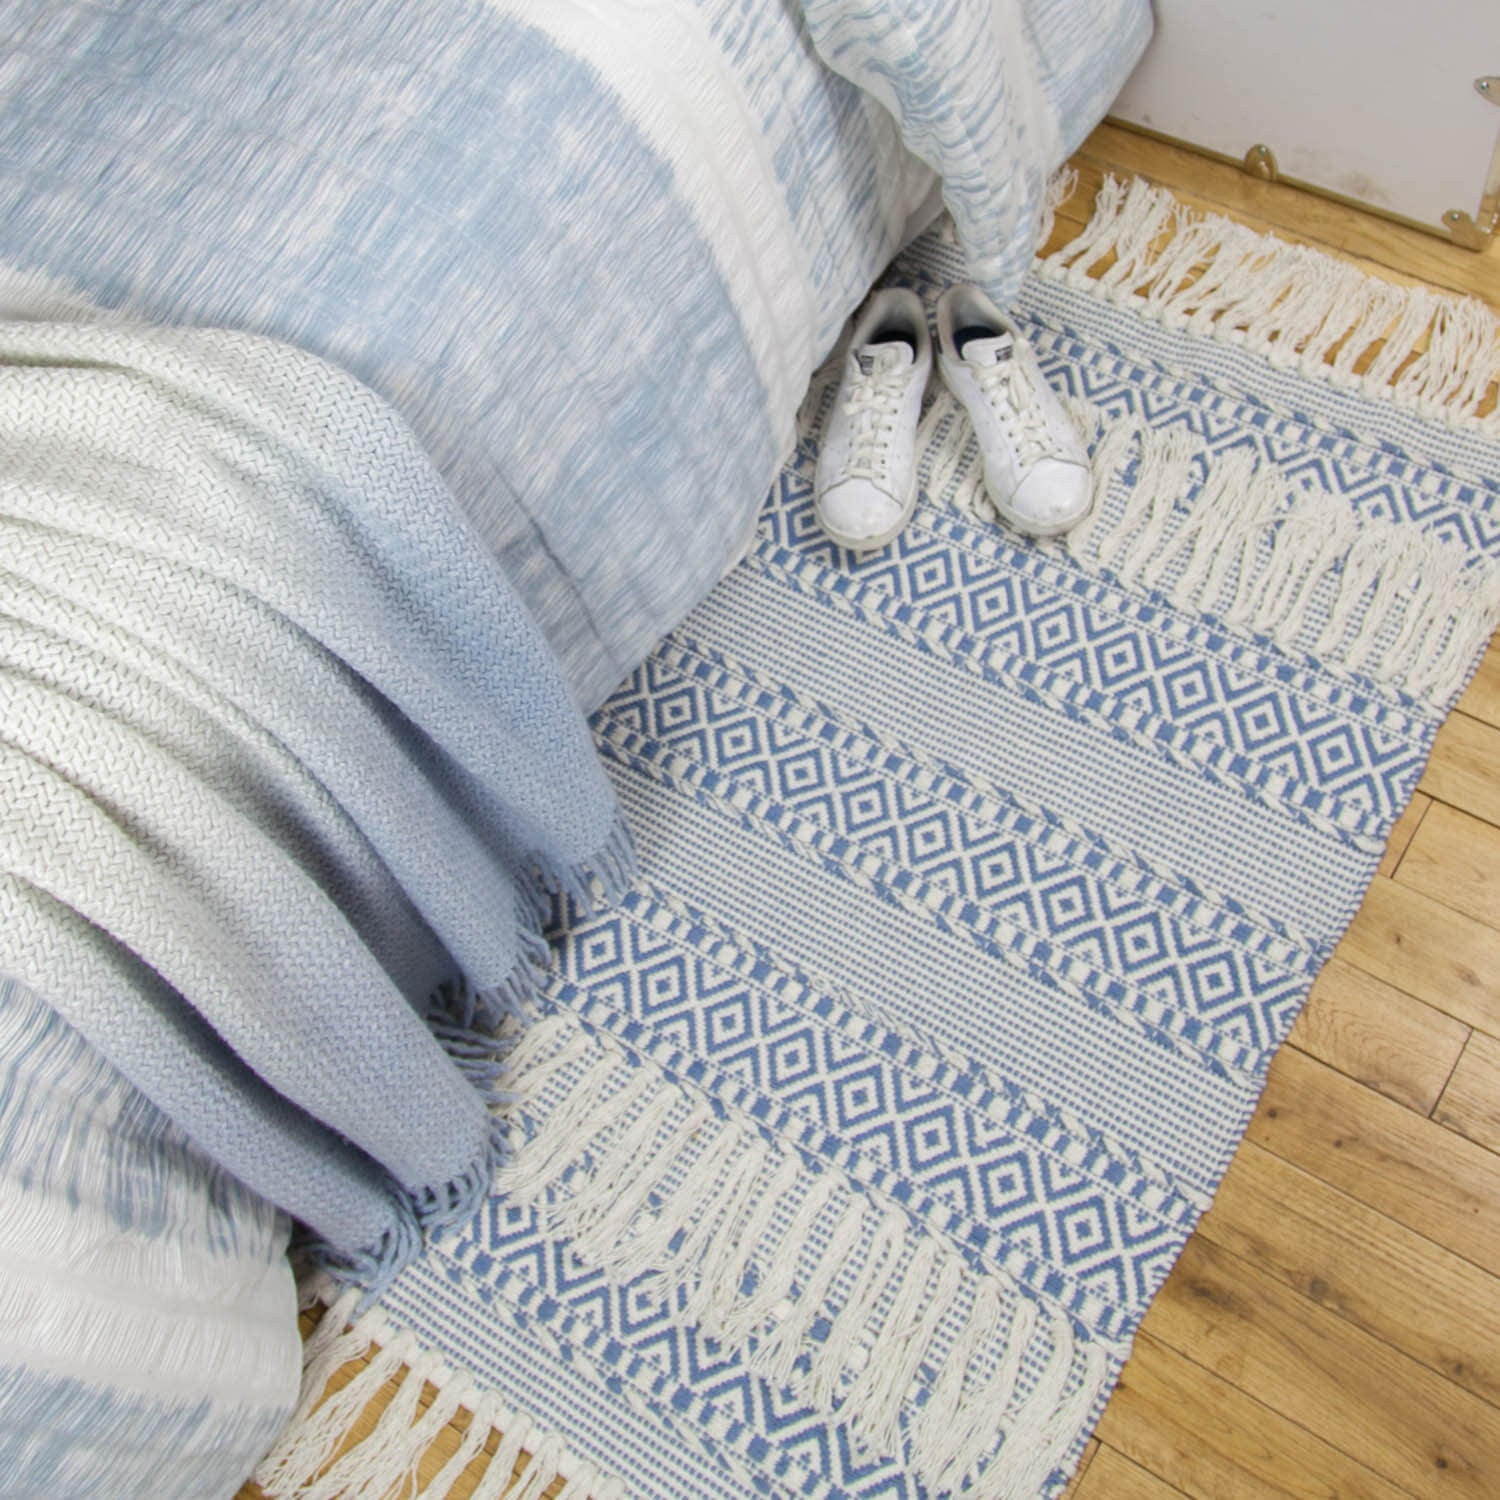 Textured Hand Woven Tassel Accent Rug - Dusty Blue